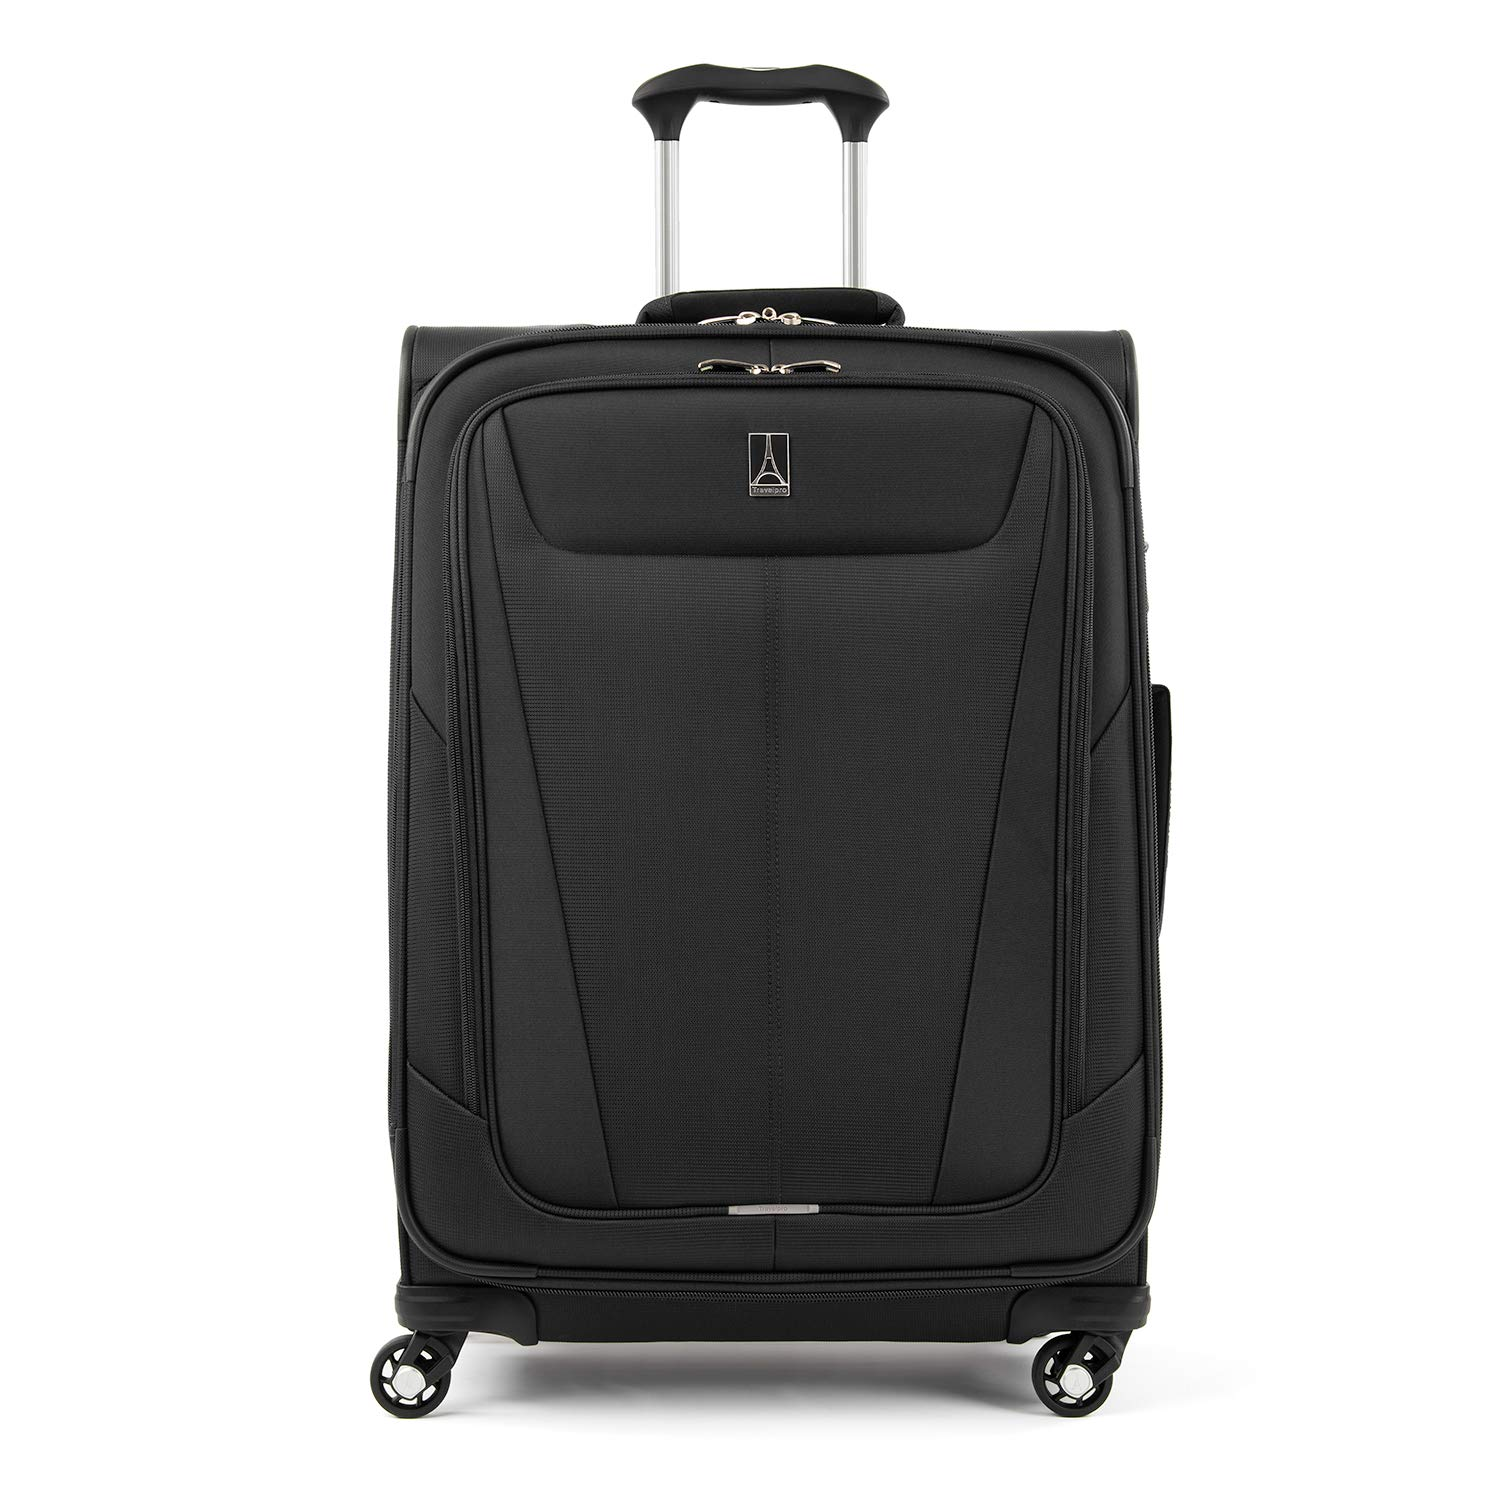 Travelpro Maxlite 5 Expandable Luggage, 25-Inch